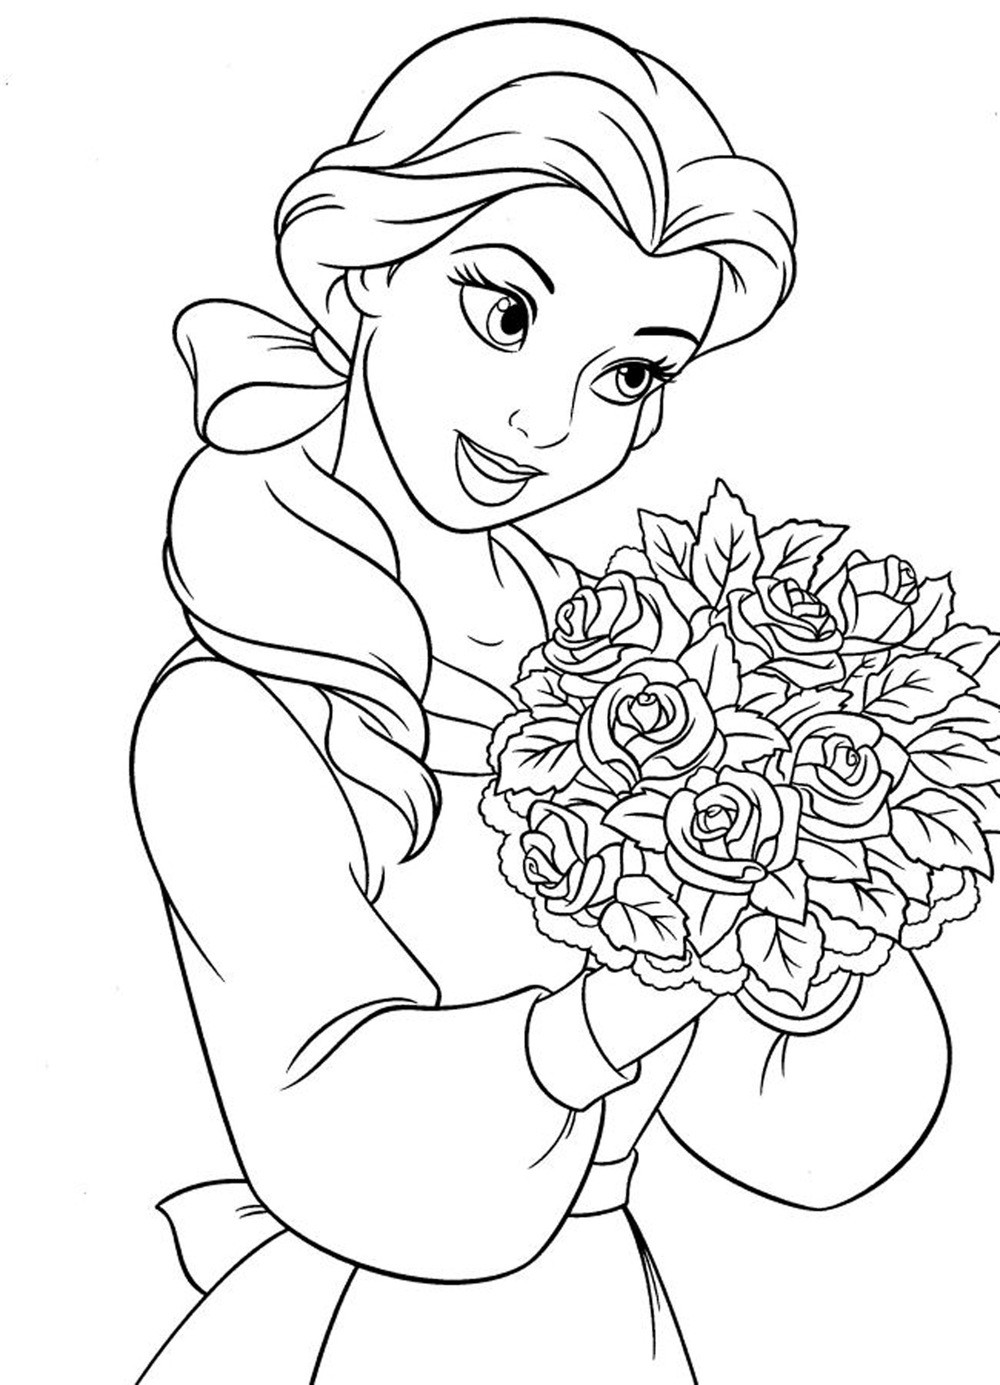 Online Coloring Pages For Girls  princess coloring pages for girls Free